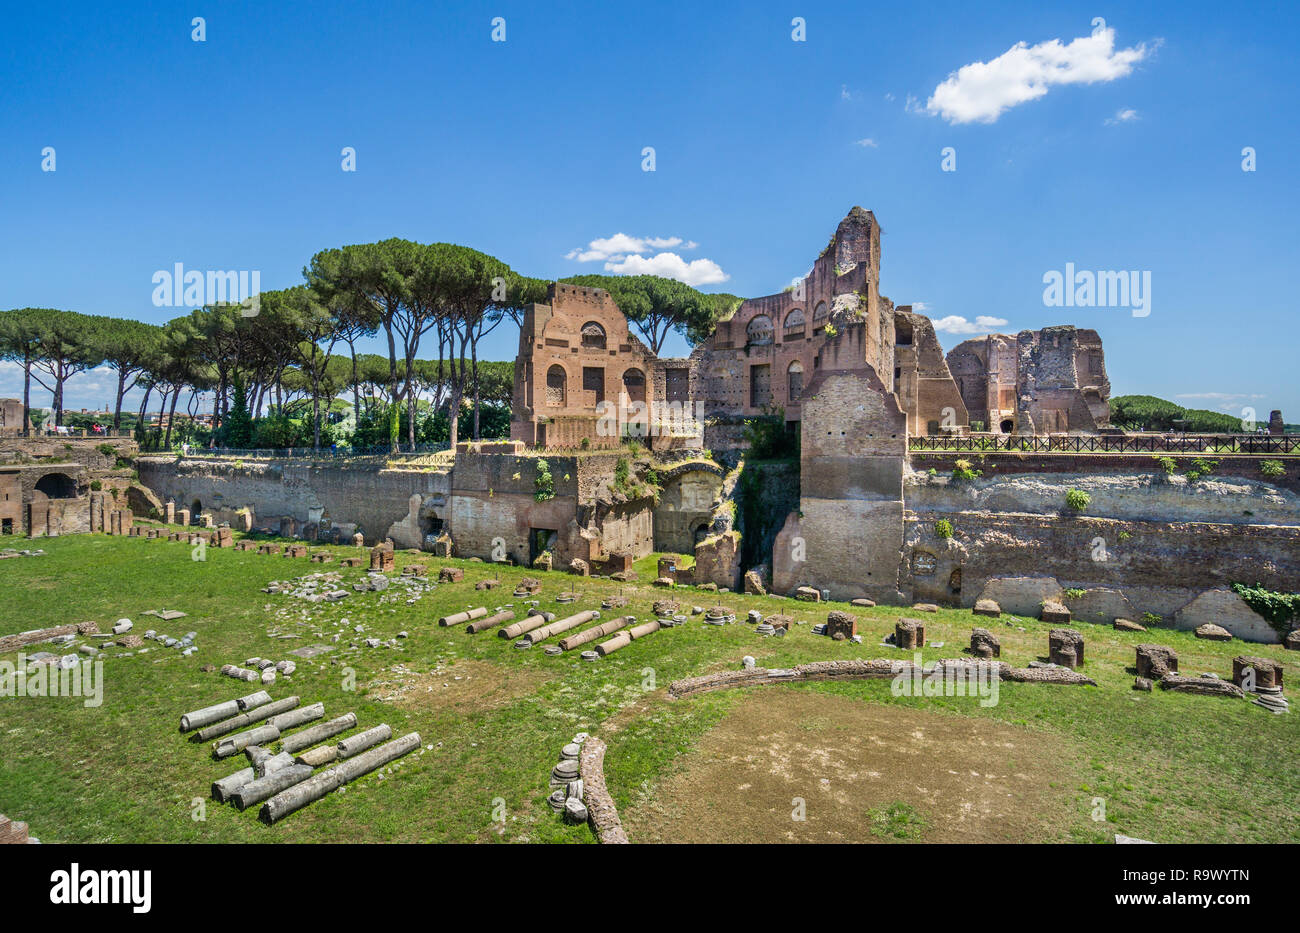 view of the Stadion of Domitian at the Palace of Domitian on Palatine Hill, Rome, Italy - Stock Image